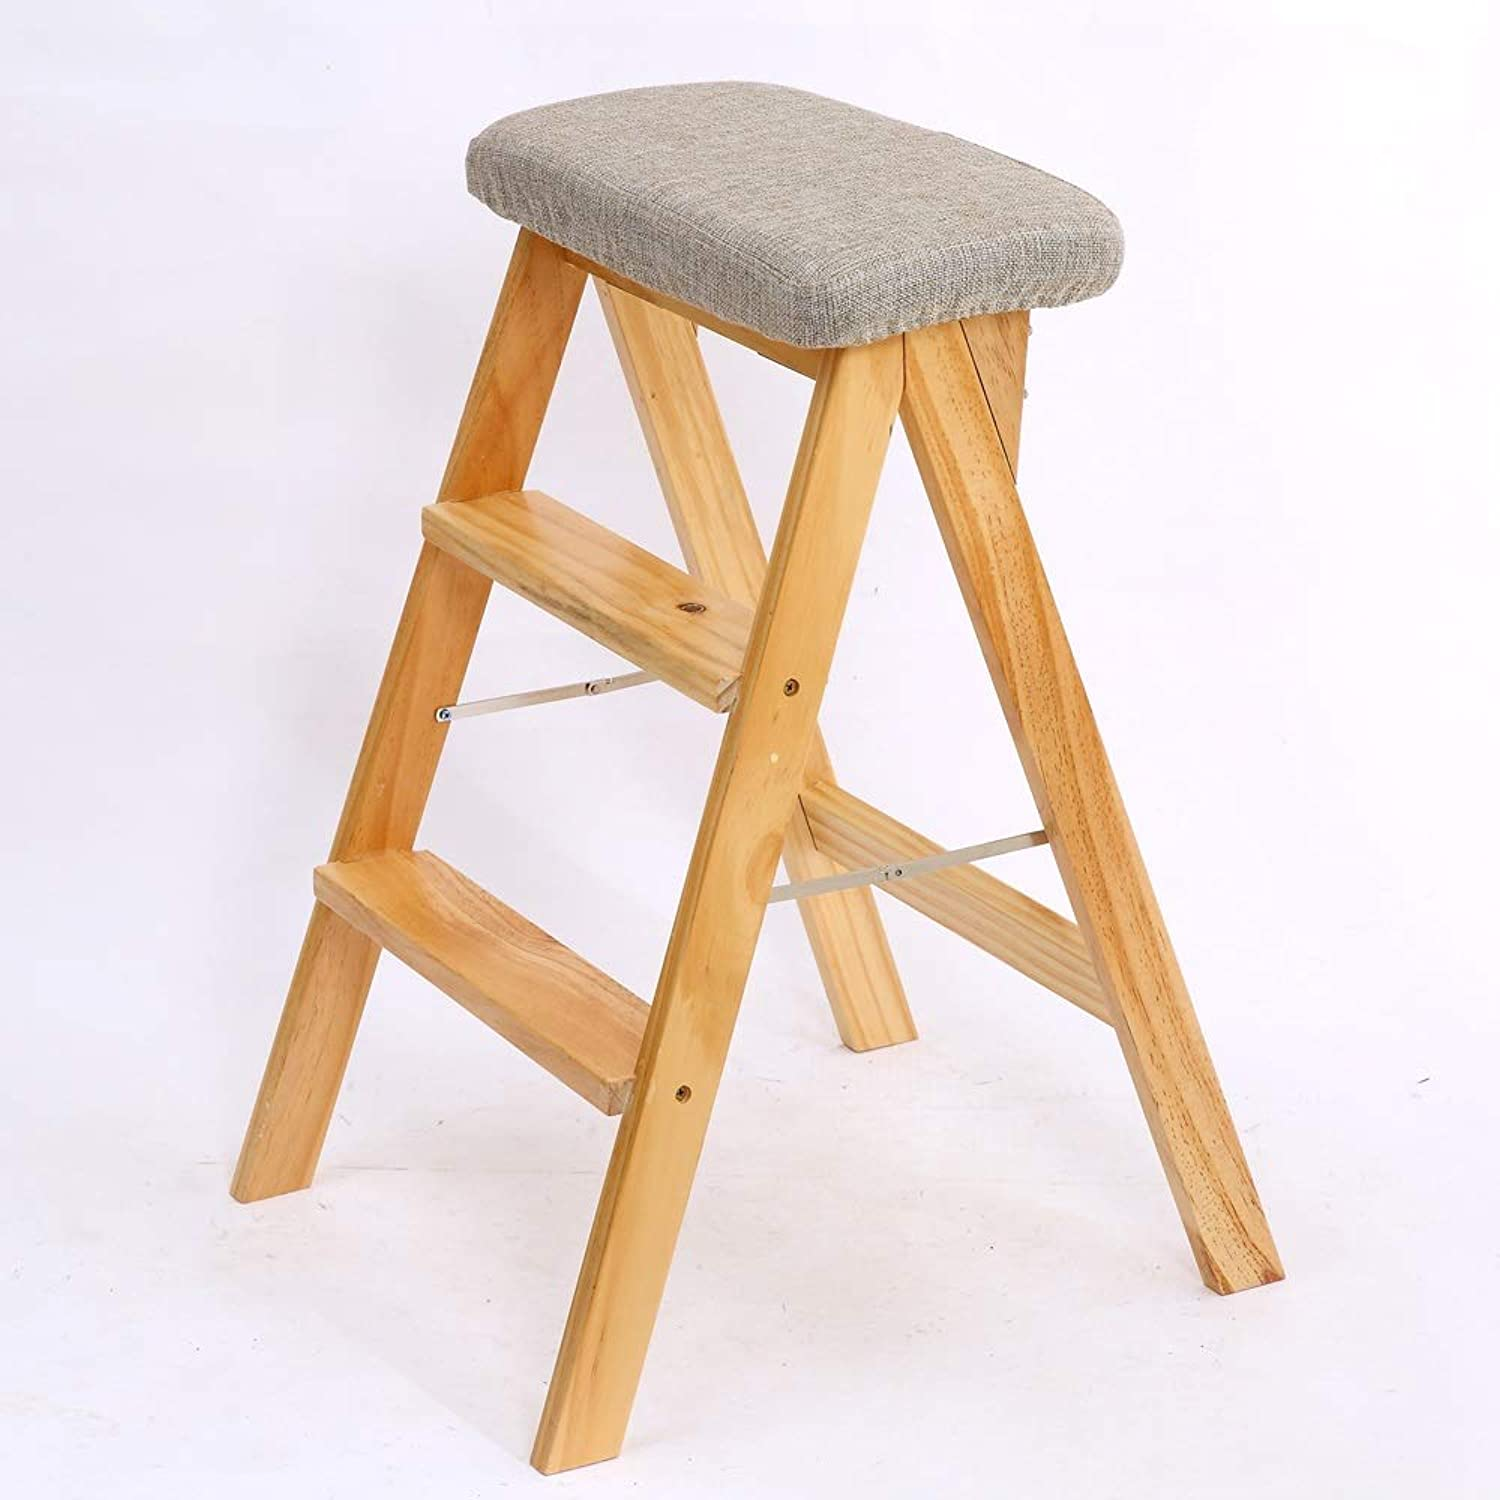 2 Step Stool, Foldable and Easy to Store Kitchen Stool, Home Stool, High Stool (color   A)